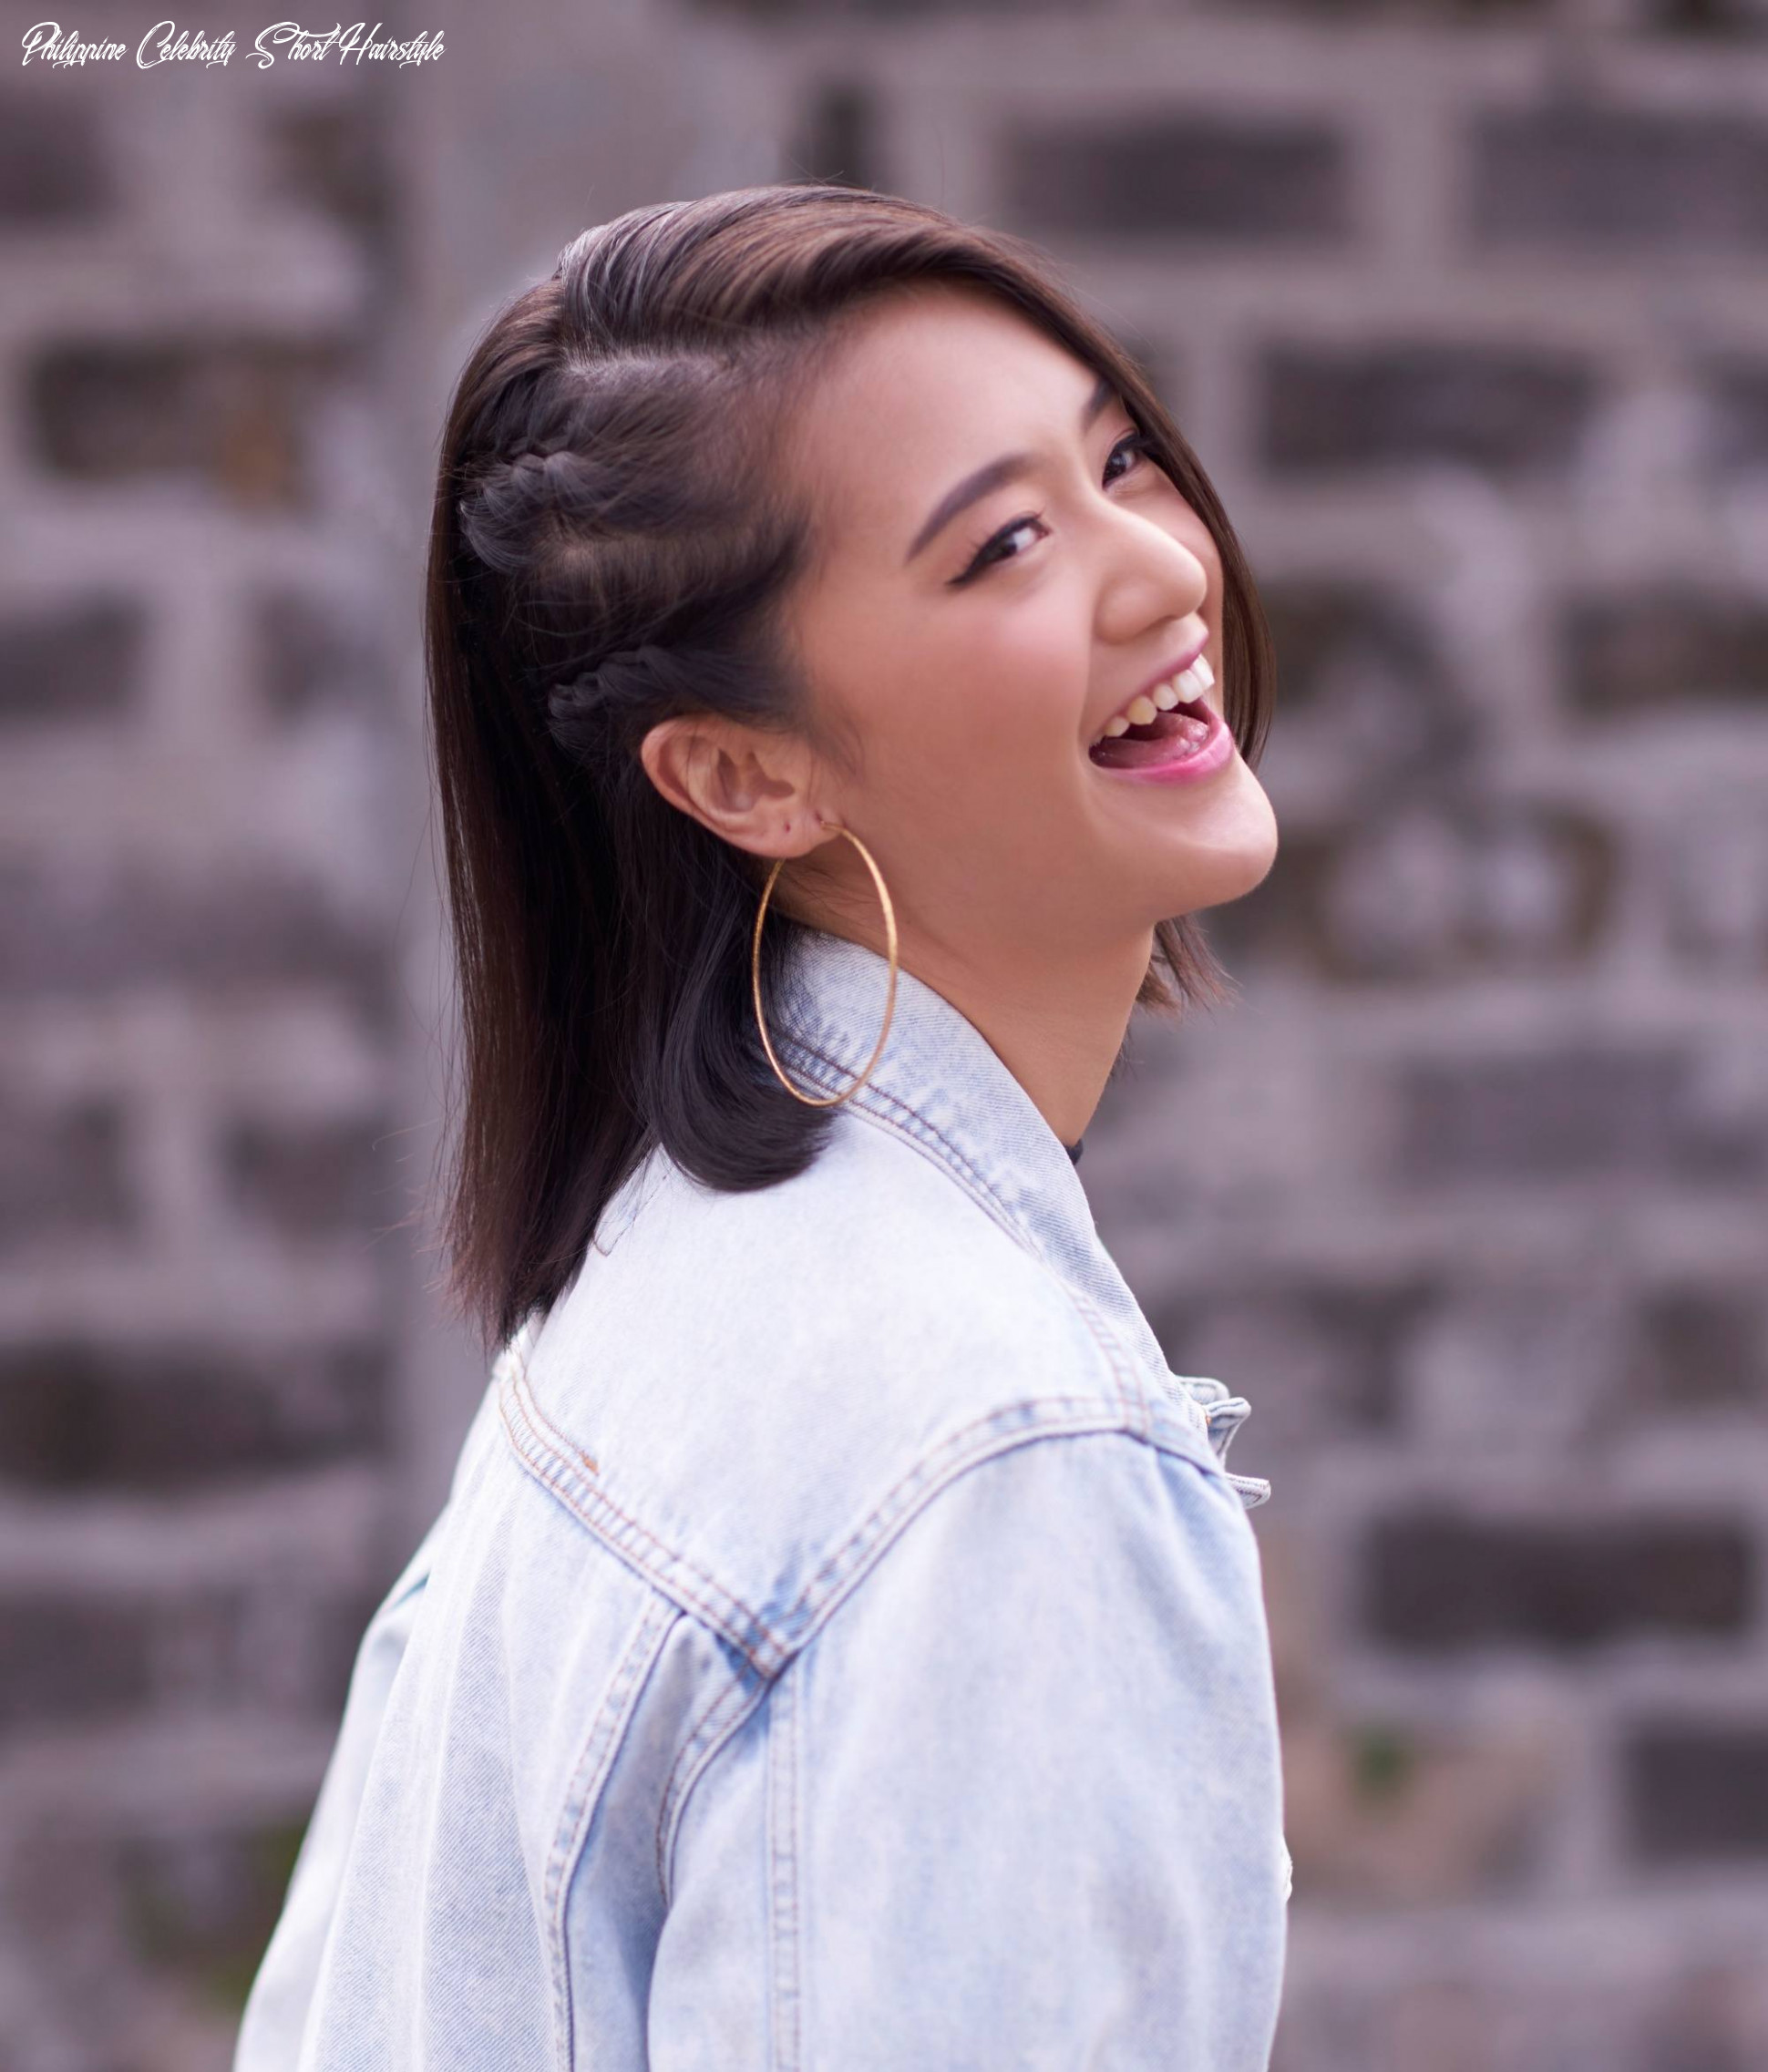 10 best short hairstyles for pinays   all things hair ph philippine celebrity short hairstyle